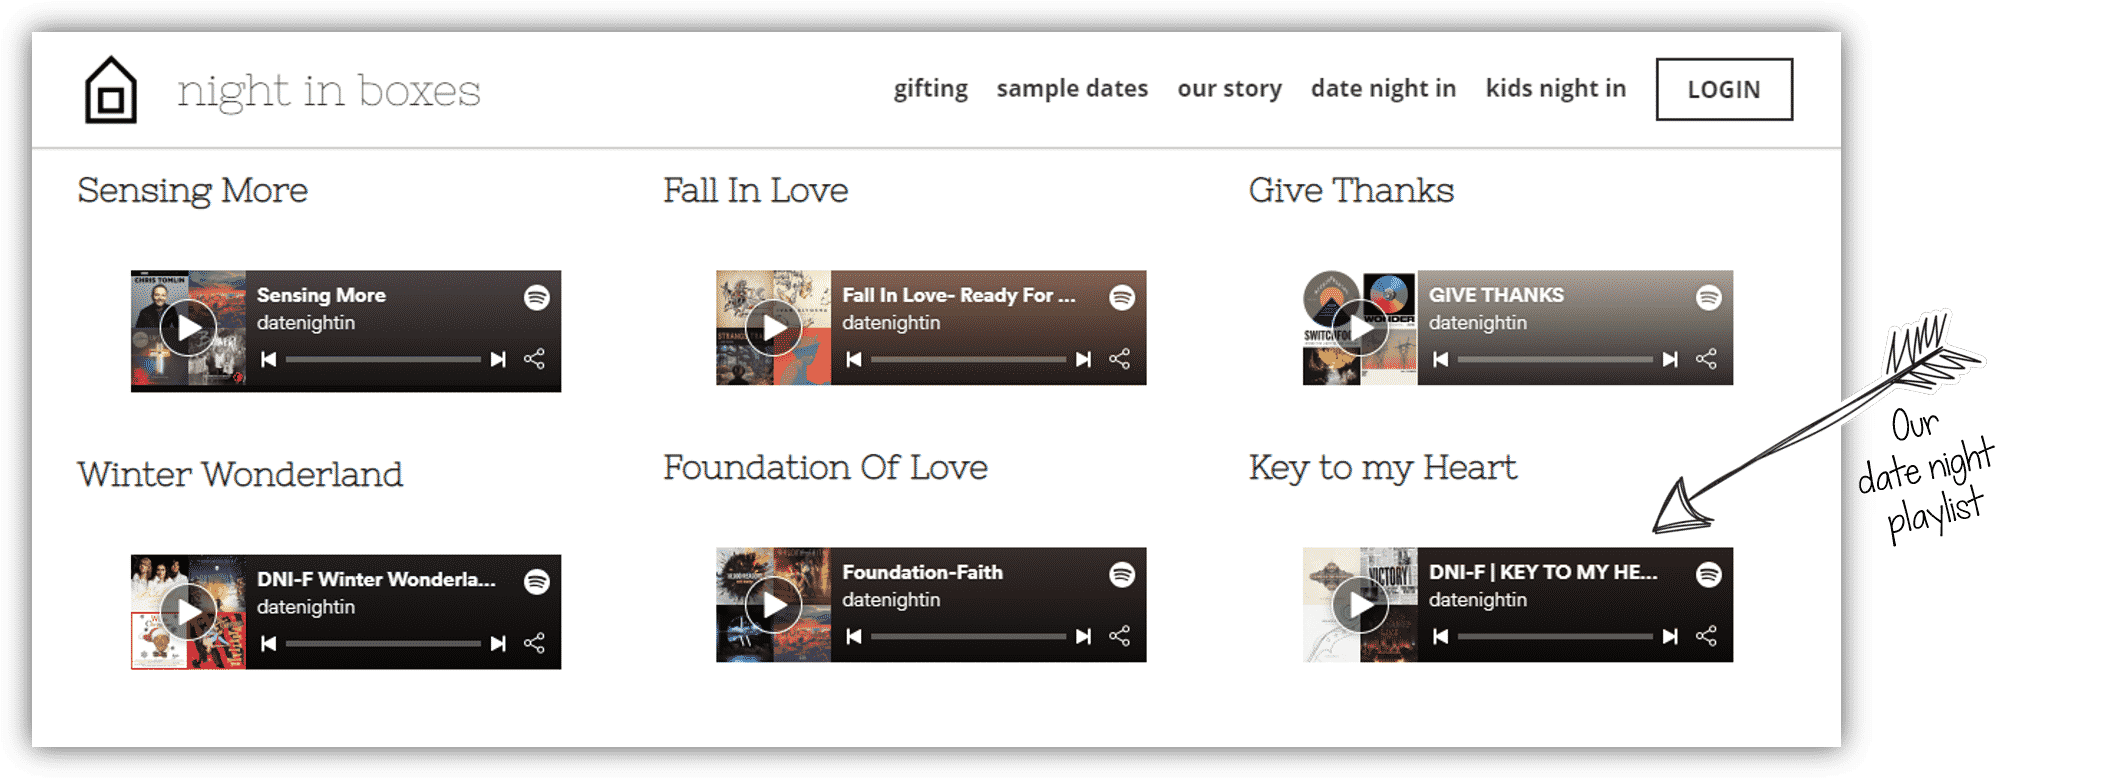 Screenshot of the Date Night In Box Website showing the Key to my Heart Date Night Playlist